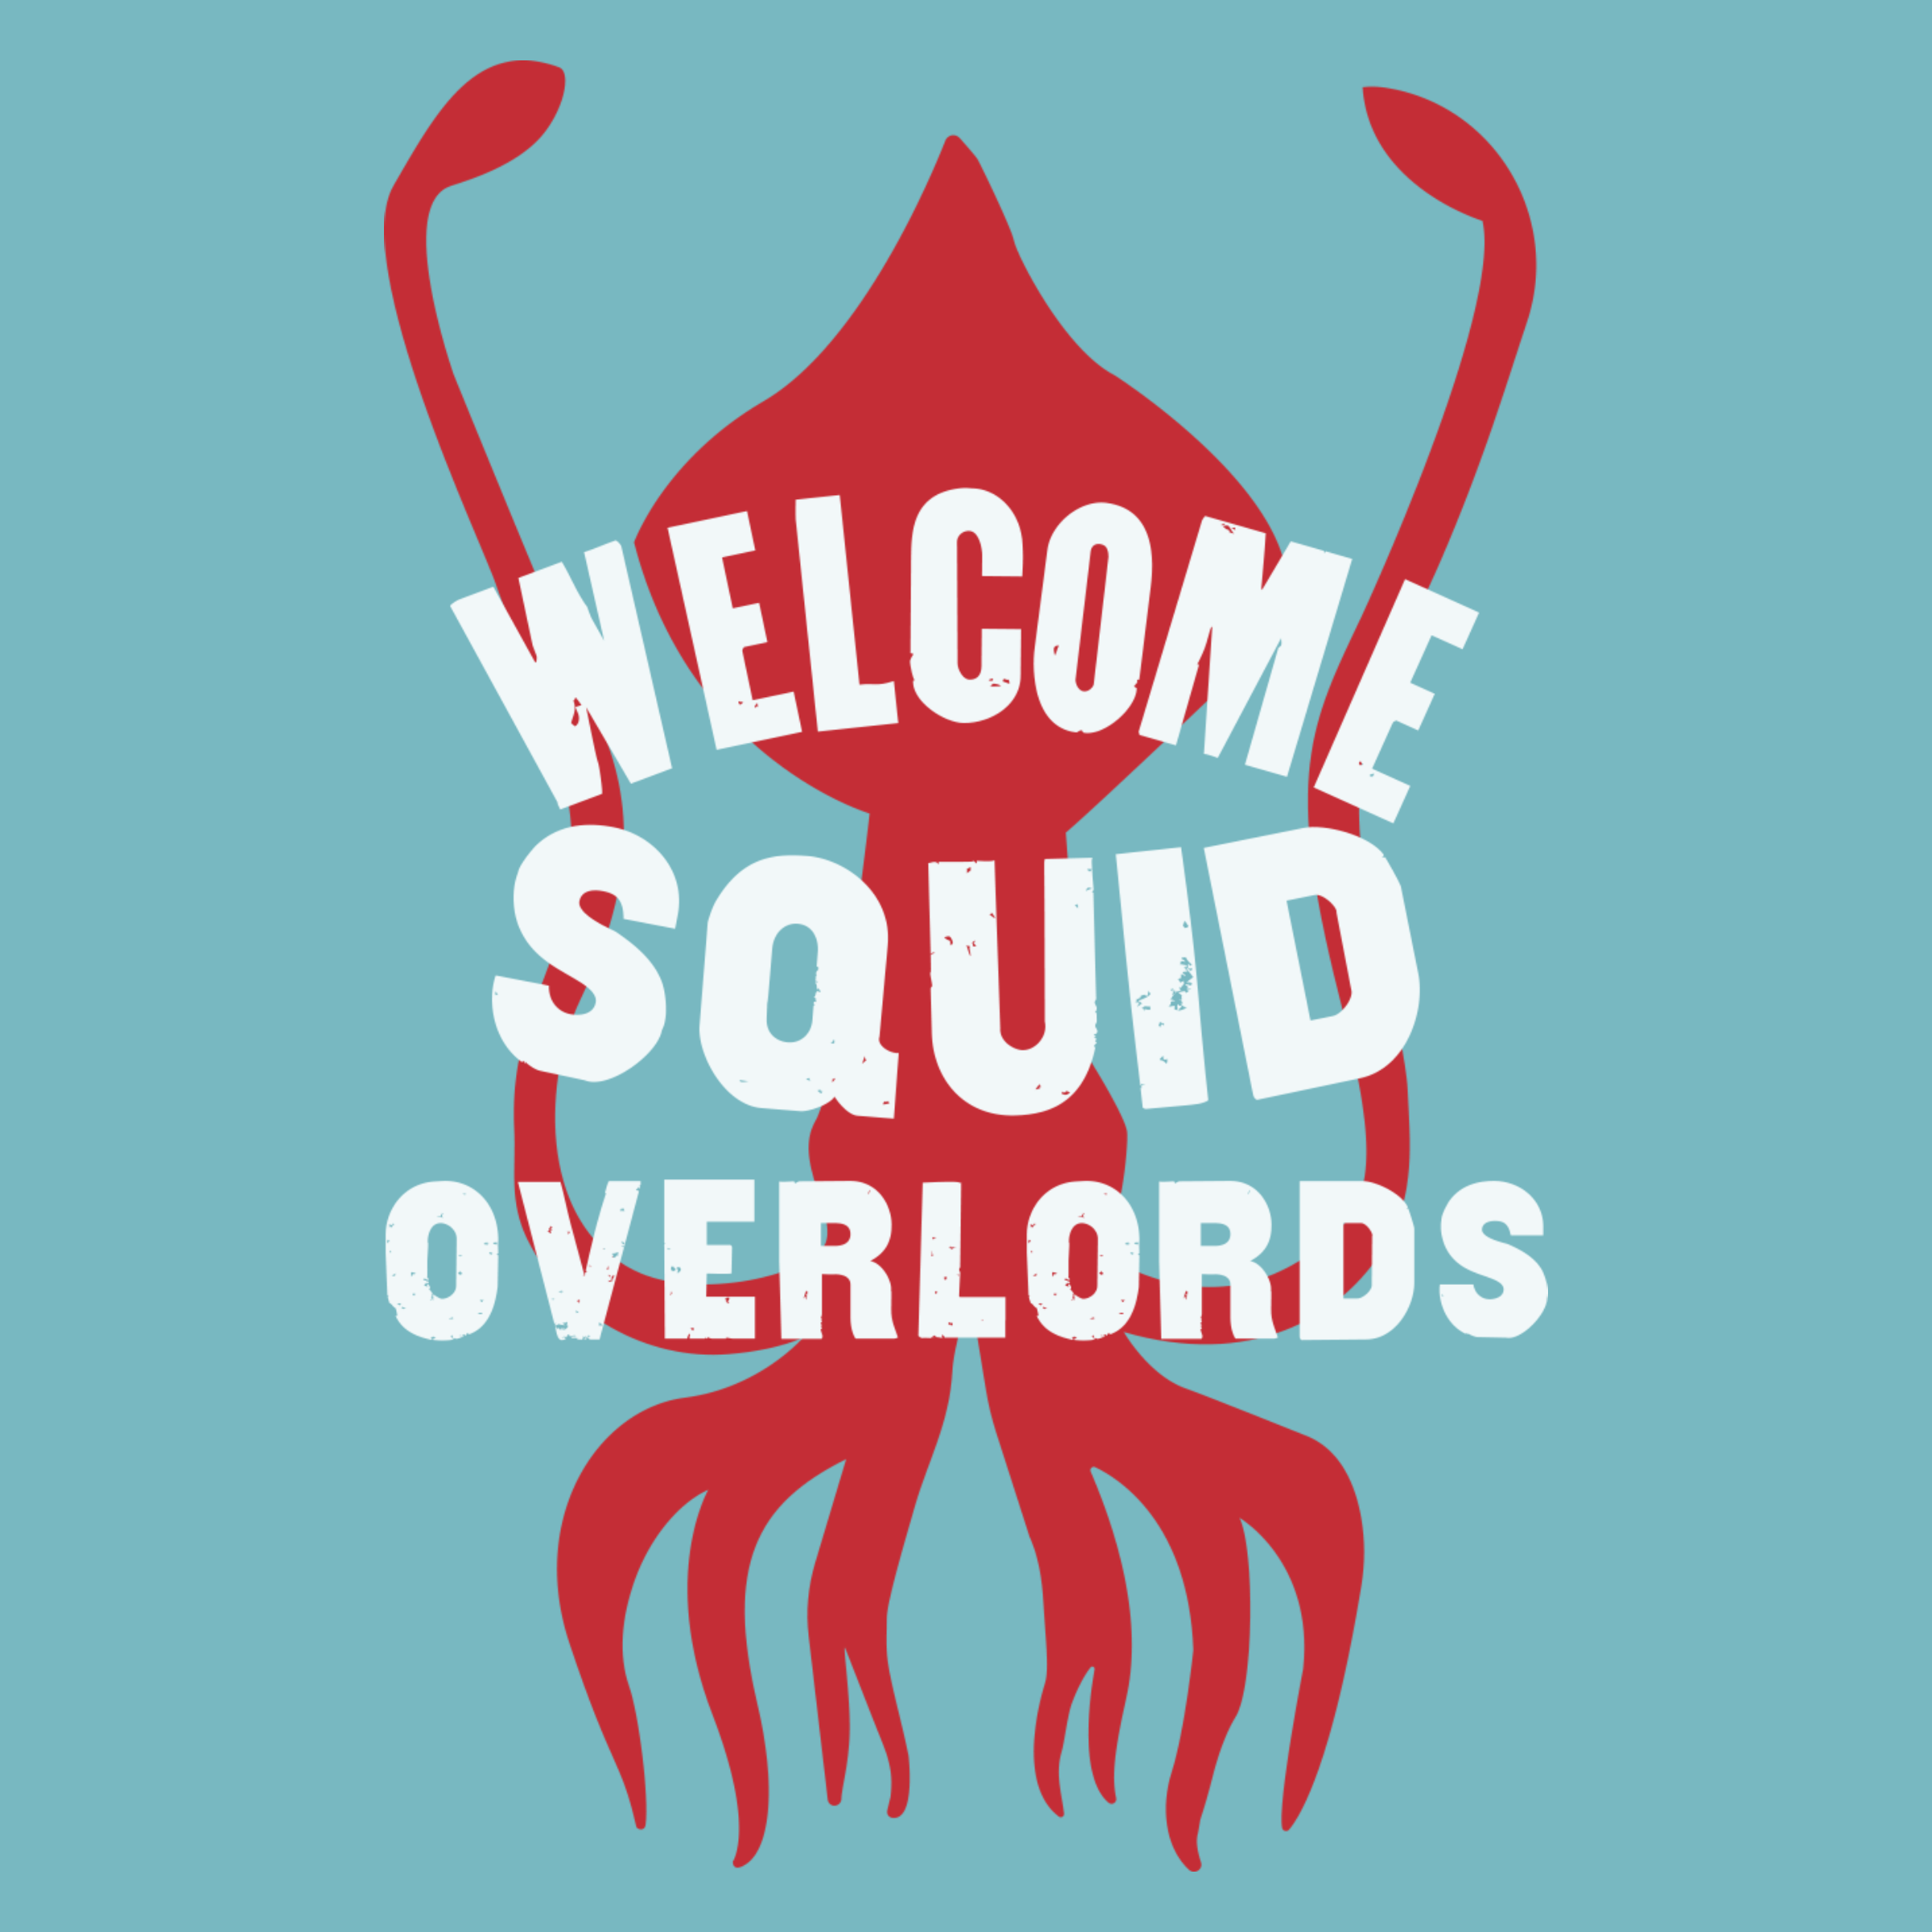 Welcome Squid Overlords